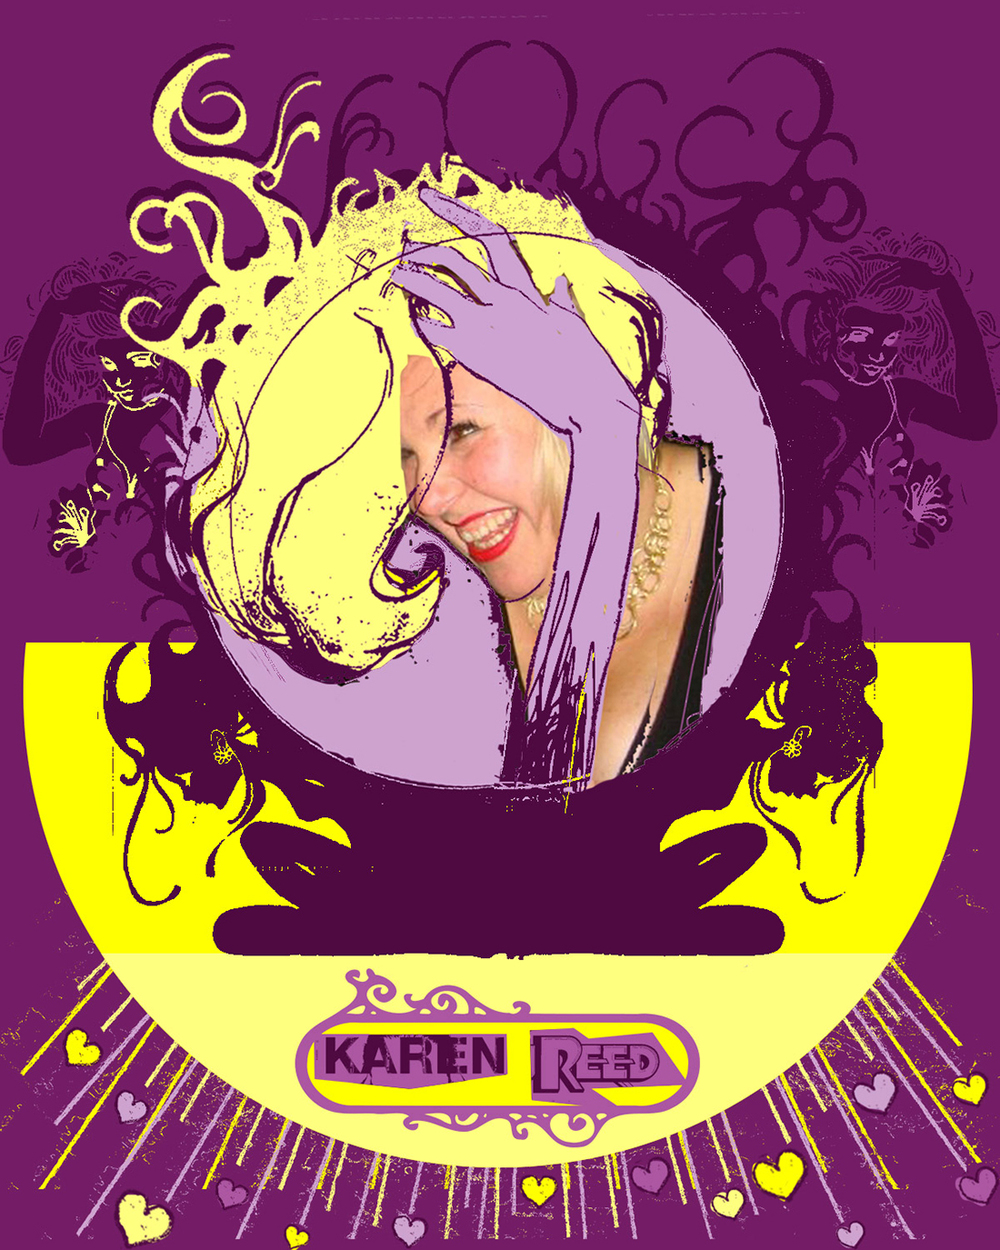 All Made Up Comedy - Karen Reed - Profile.jpg